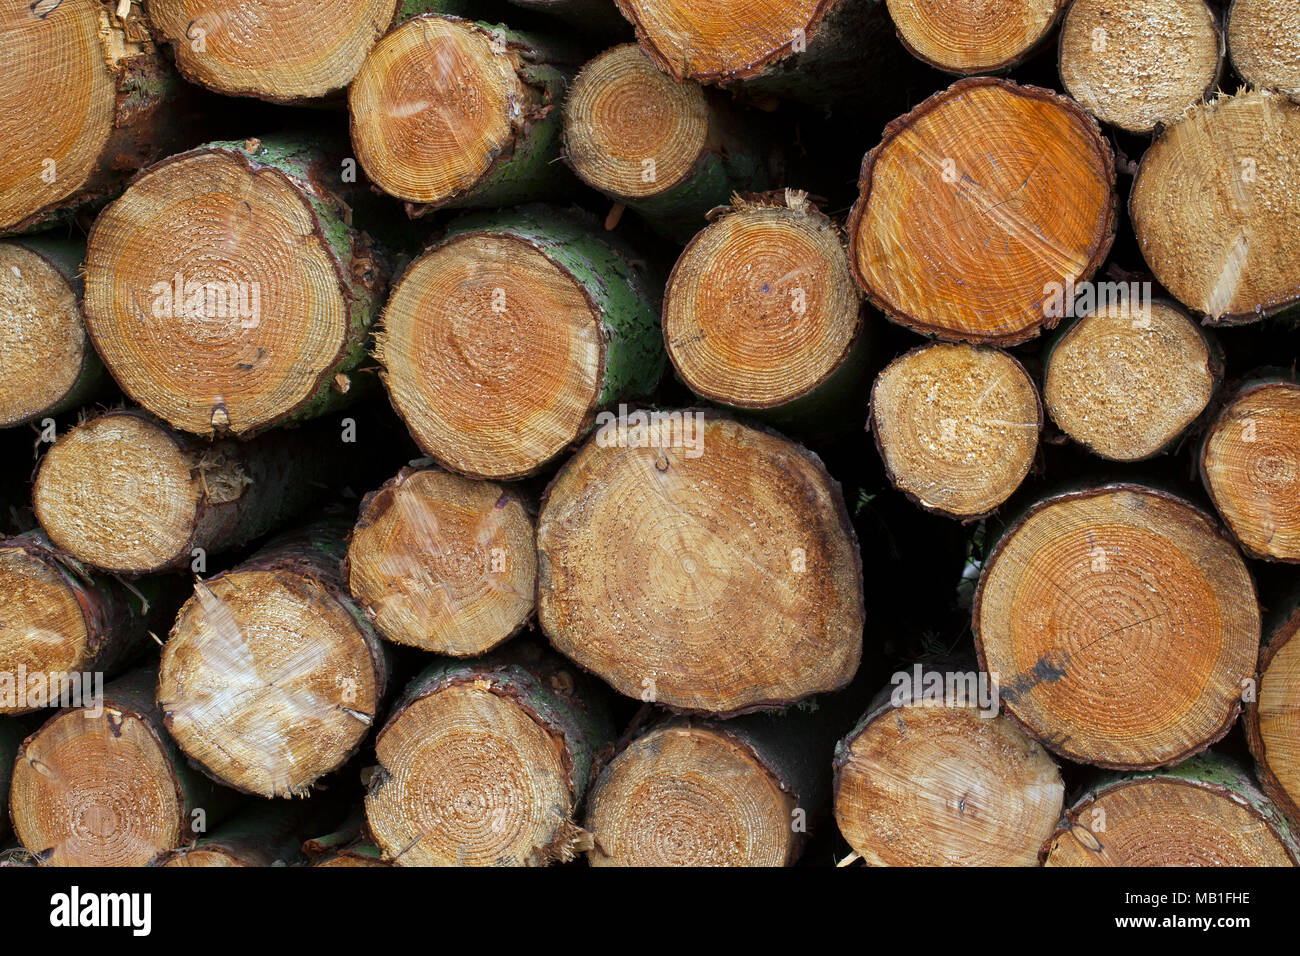 Stack of cut Norway spruce (Picea abies) logs, firewood used as wood fuel - Stock Image